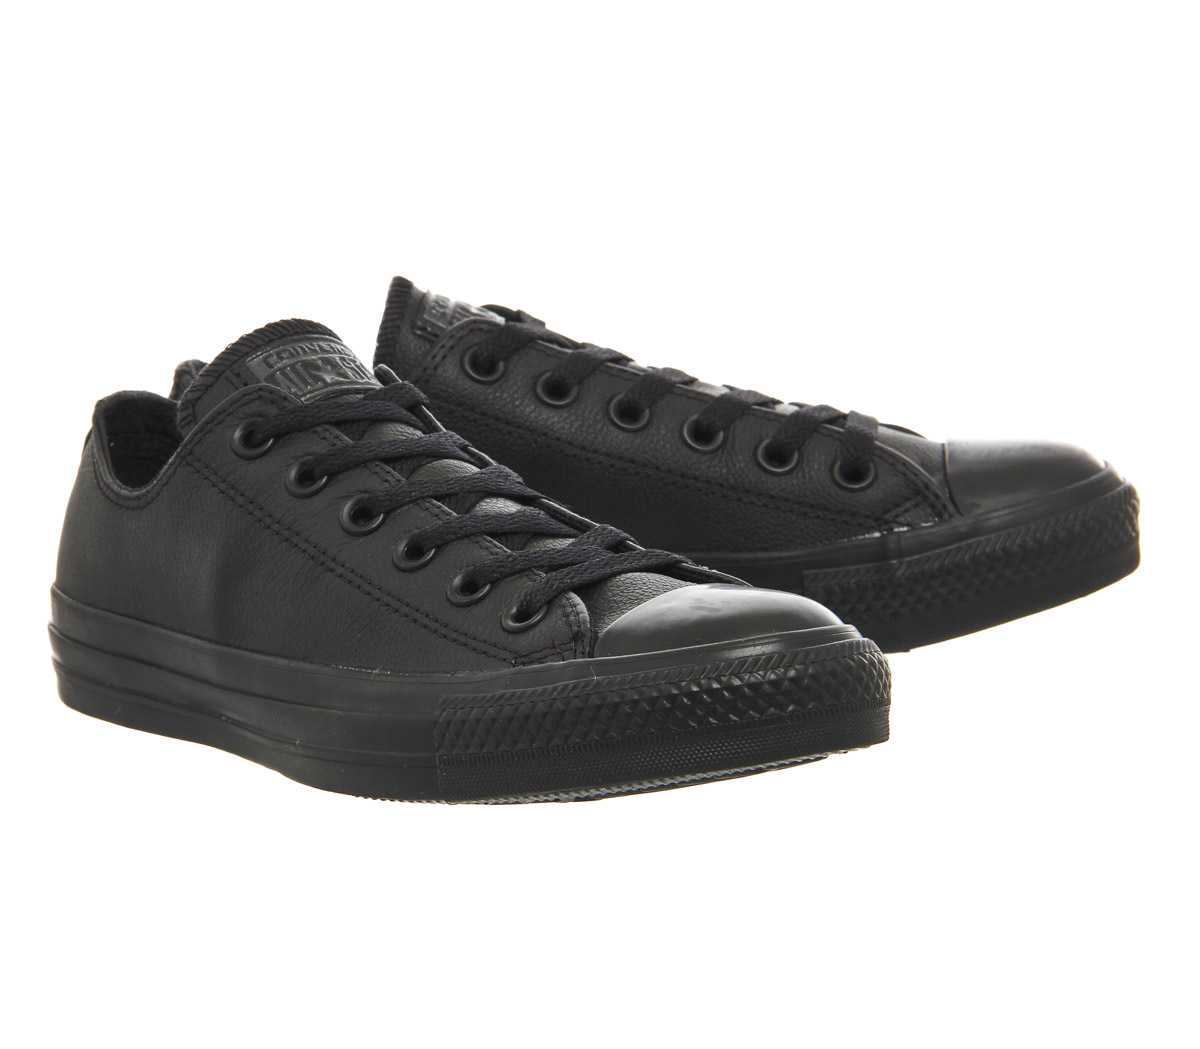 black leather converse all star low leather KTQHUNE